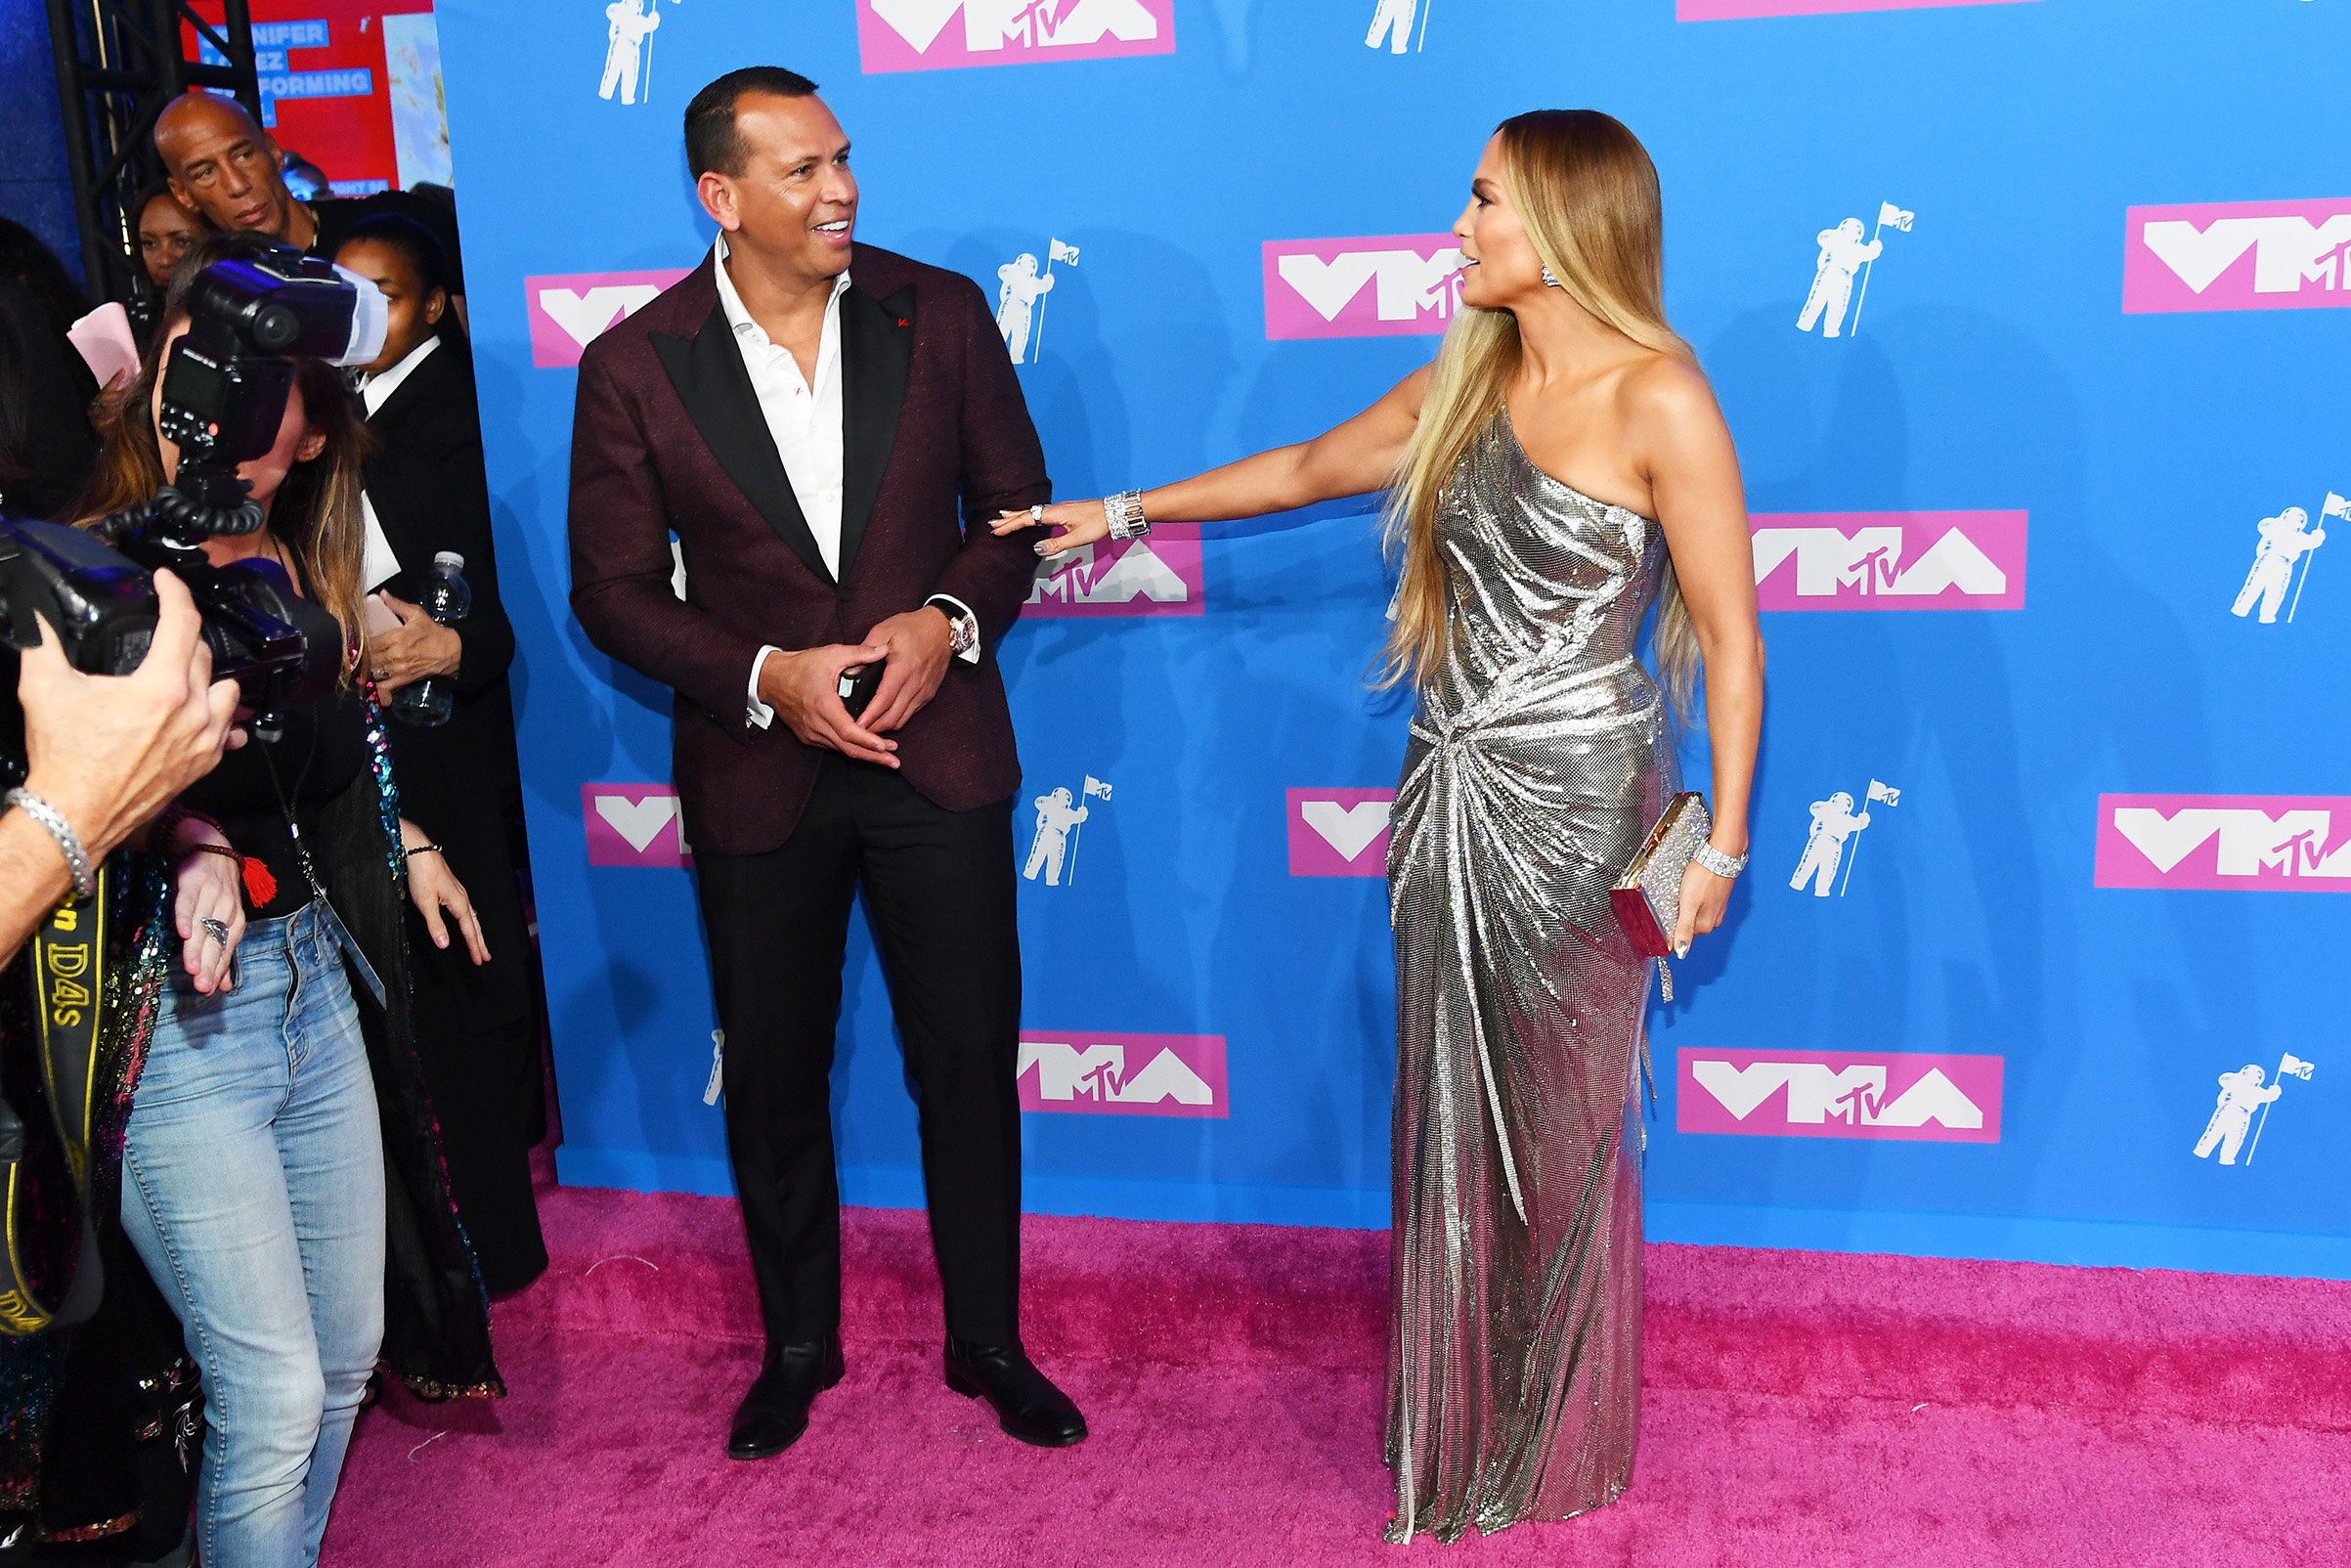 NEW YORK, NY - AUGUST 20:  Alex Rodriguez and Jennifer Lopez attend the 2018 MTV Video Music Awards at Radio City Music Hall on August 20, 2018 in New York City.  (Photo by Nicholas Hunt/Getty Images for MTV)